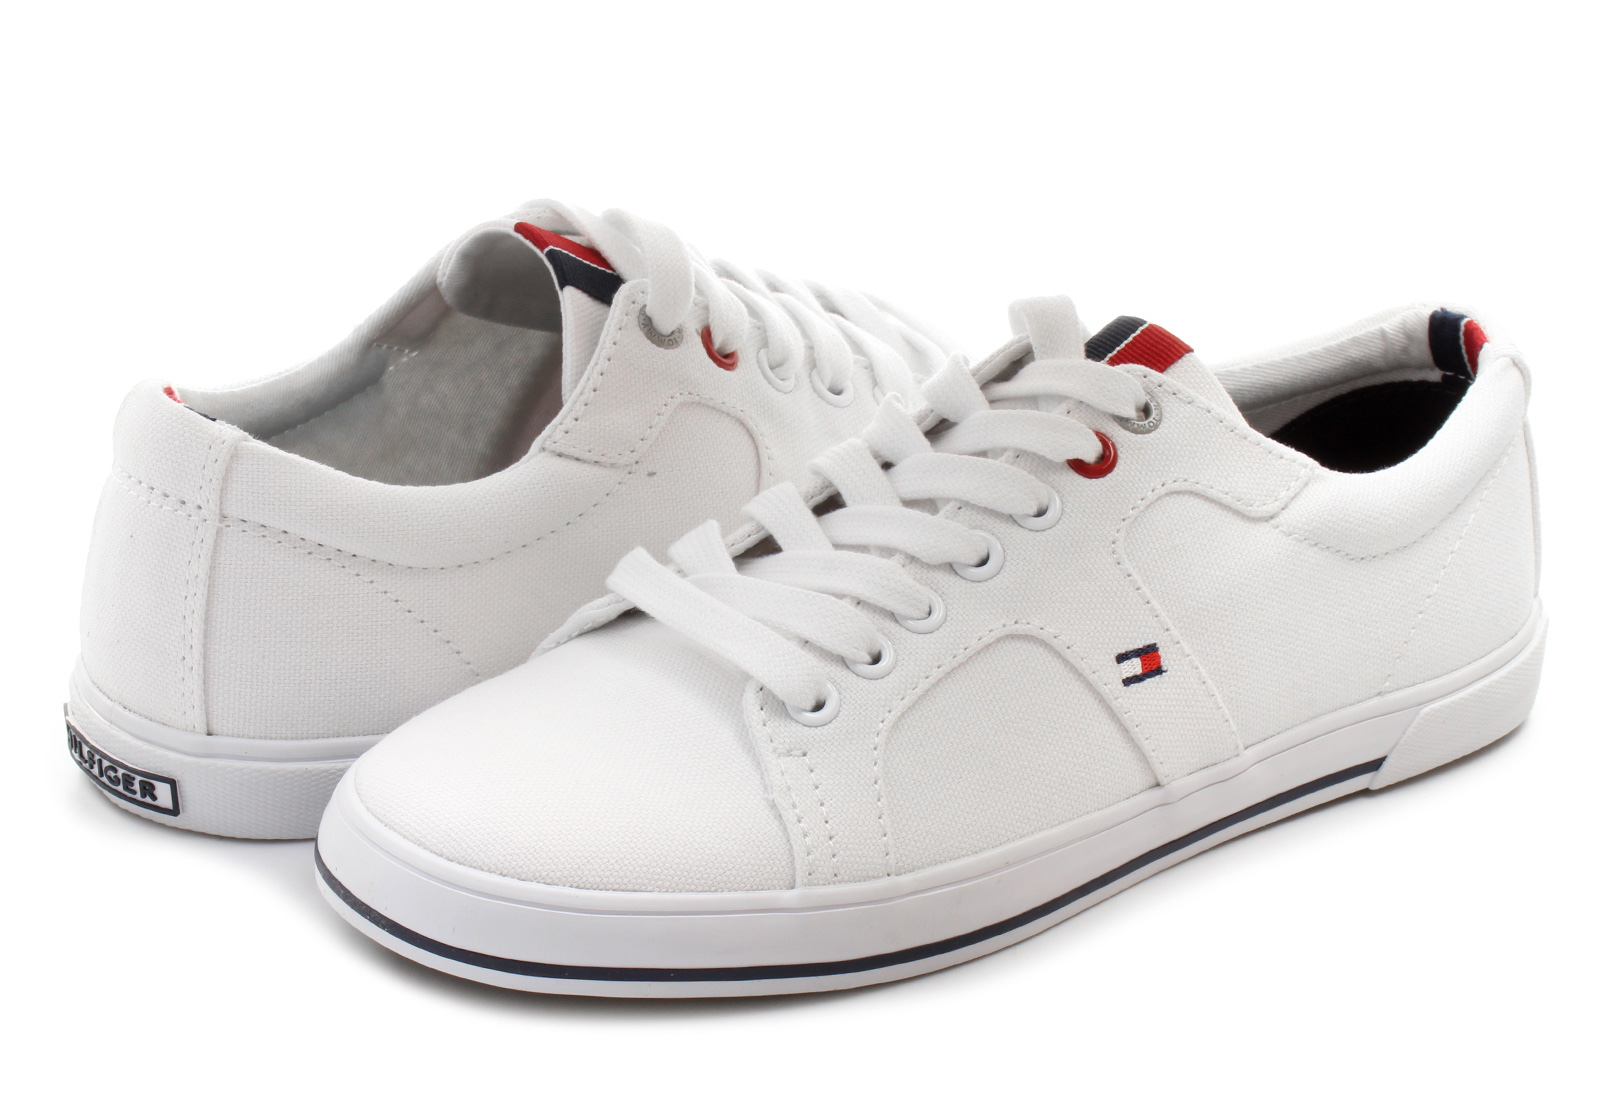 56659bac50 Tommy Hilfiger Shoes - Harry 9d - 15S-9122-100 - Online shop for ...